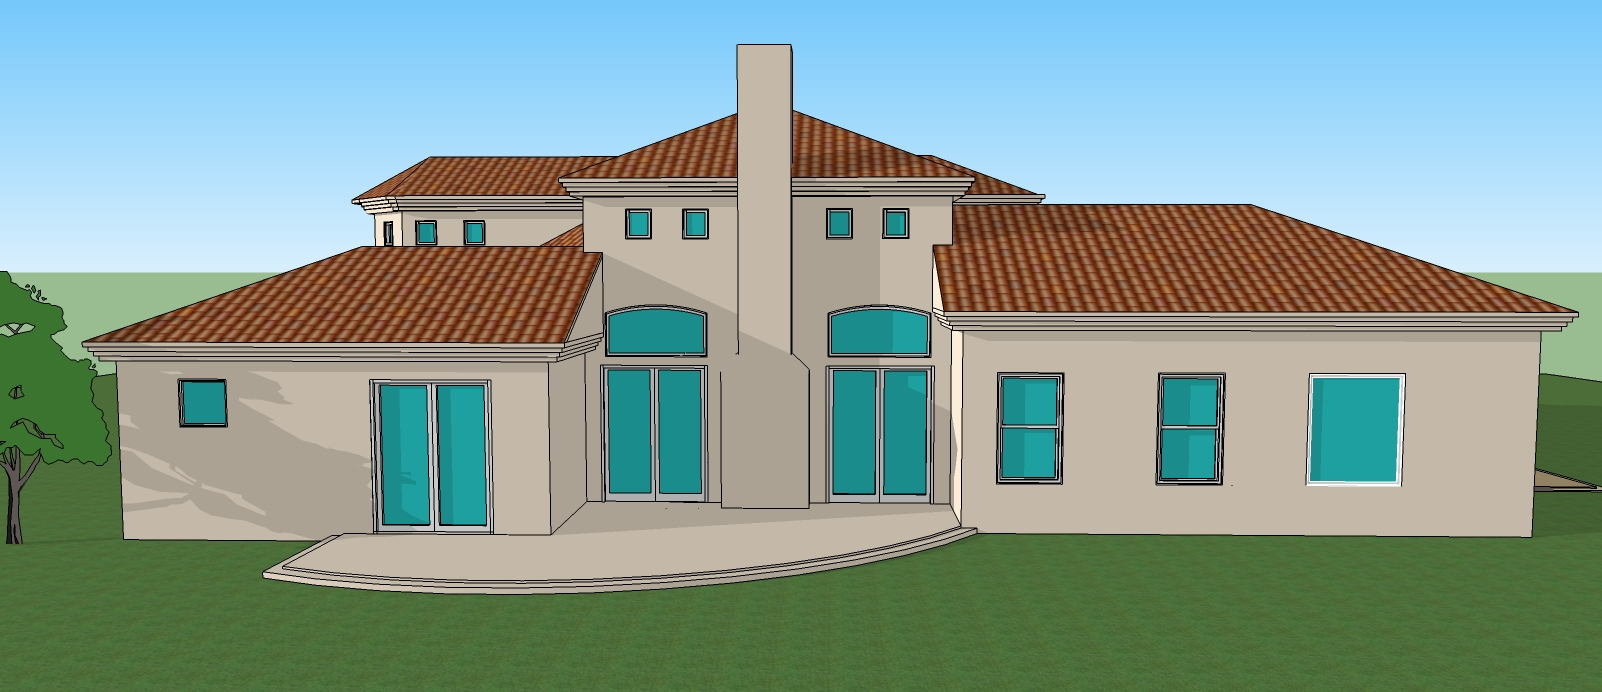 3d Cad House Design House Design Ideas: house cad drawings